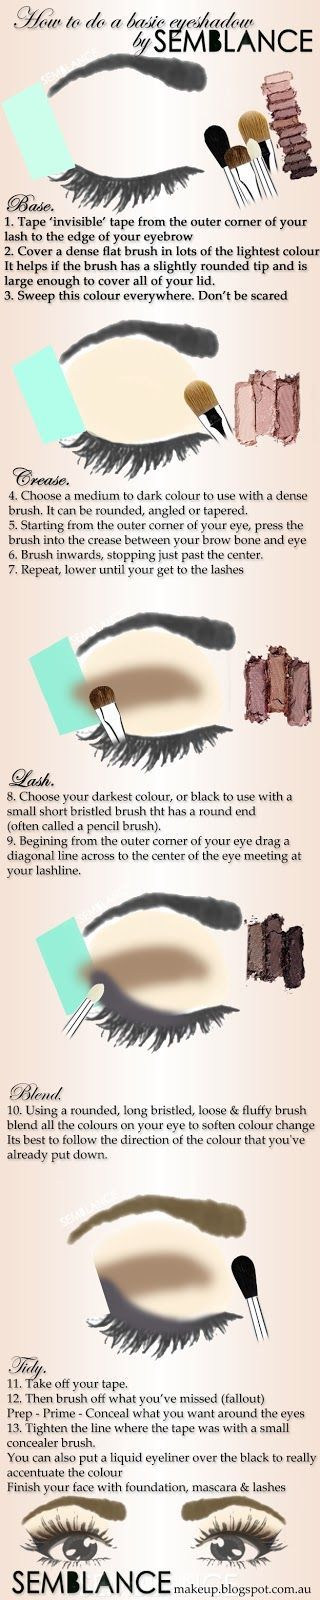 20 eye shadow hacks tips and tricks every girl needs to know rh pinterest com